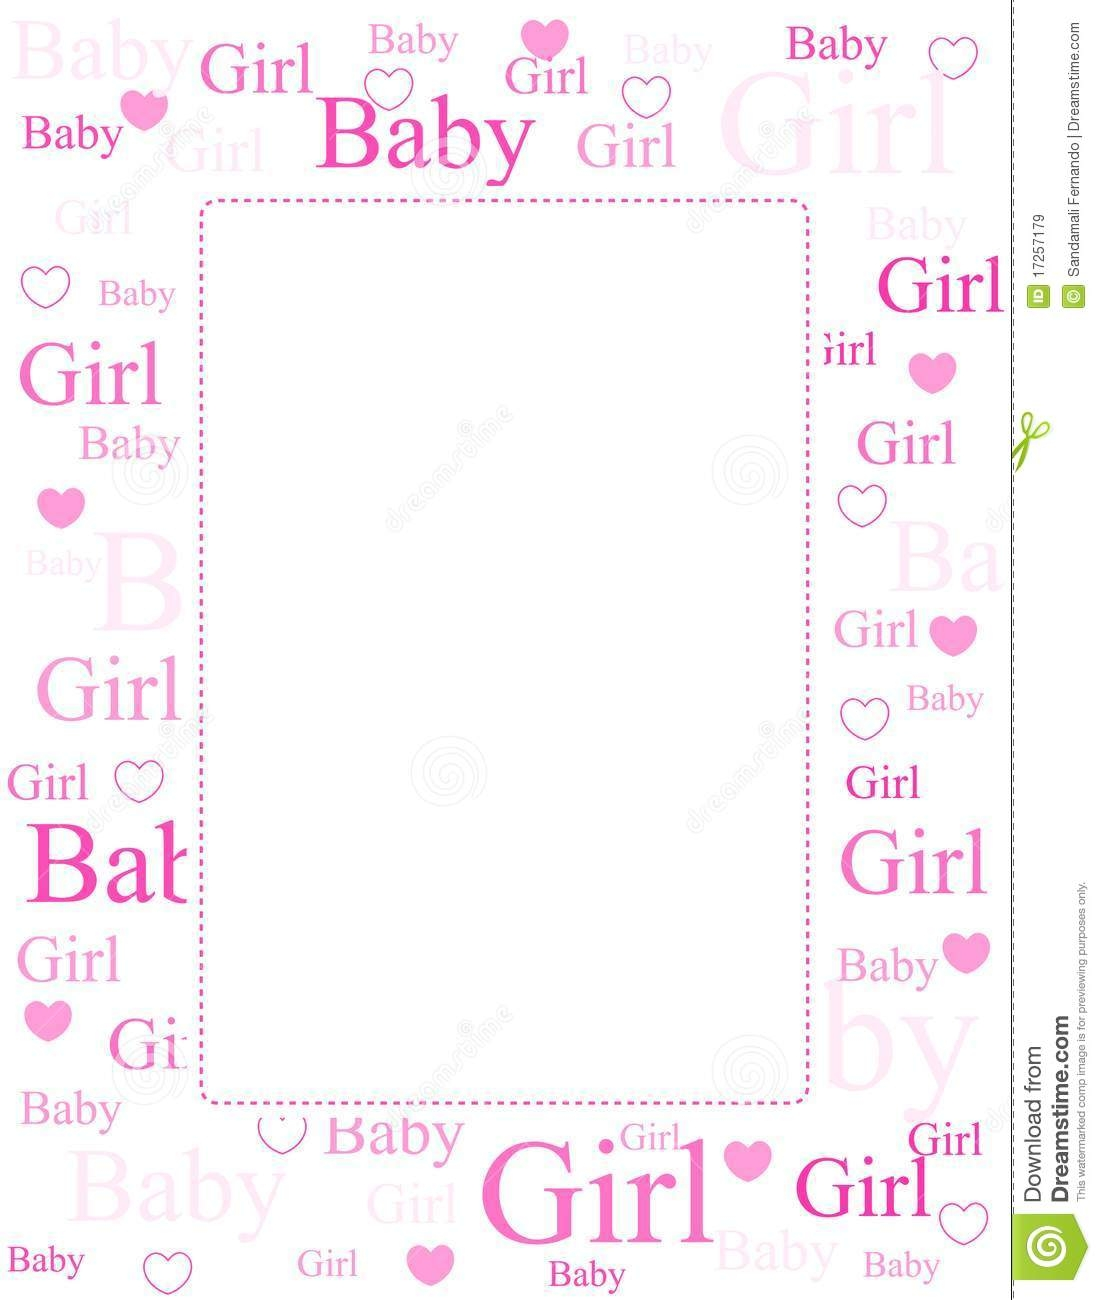 Clipart baby girl borders image royalty free download Clipart baby girl borders - ClipartFest image royalty free download